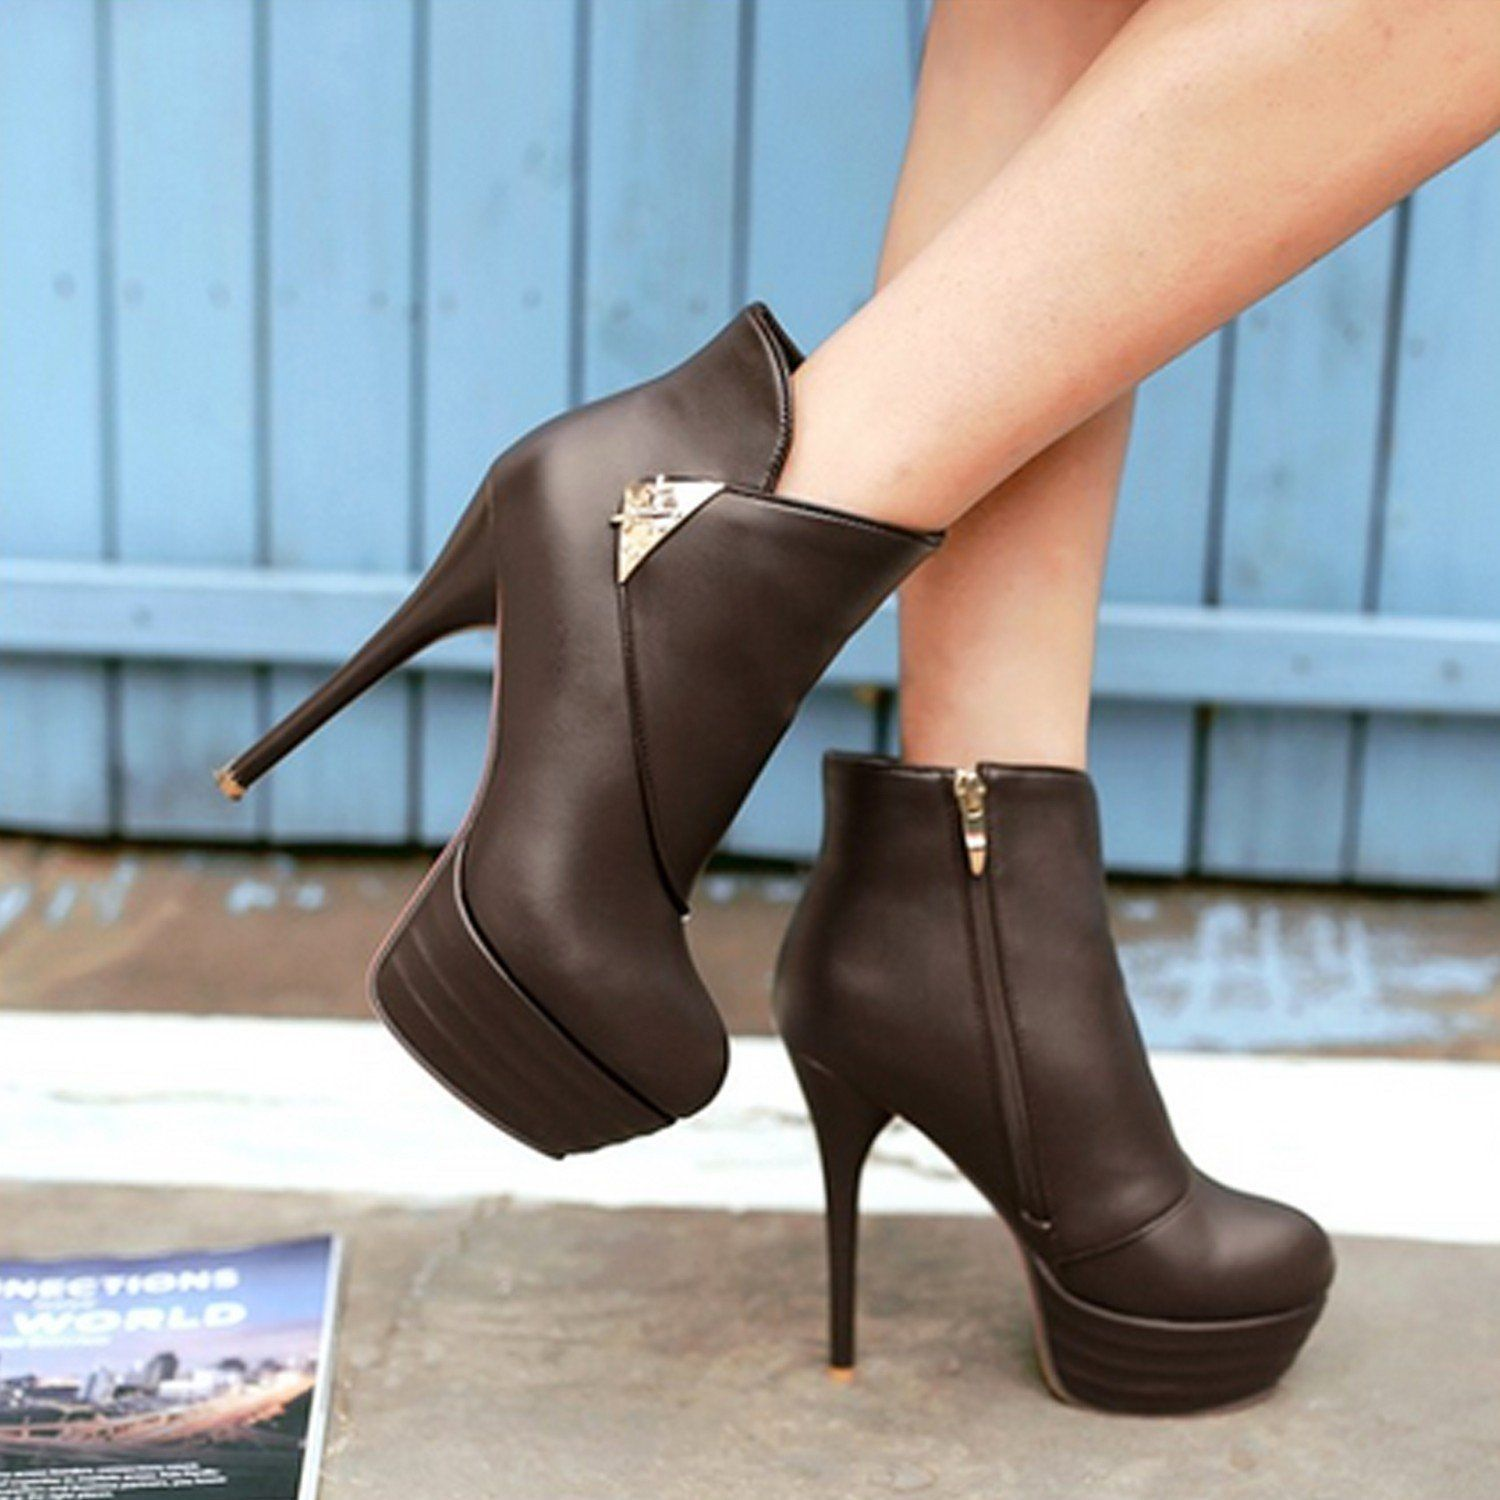 Womens Round Toe Ankle Fur Decoration Stiletto High Heel Boots